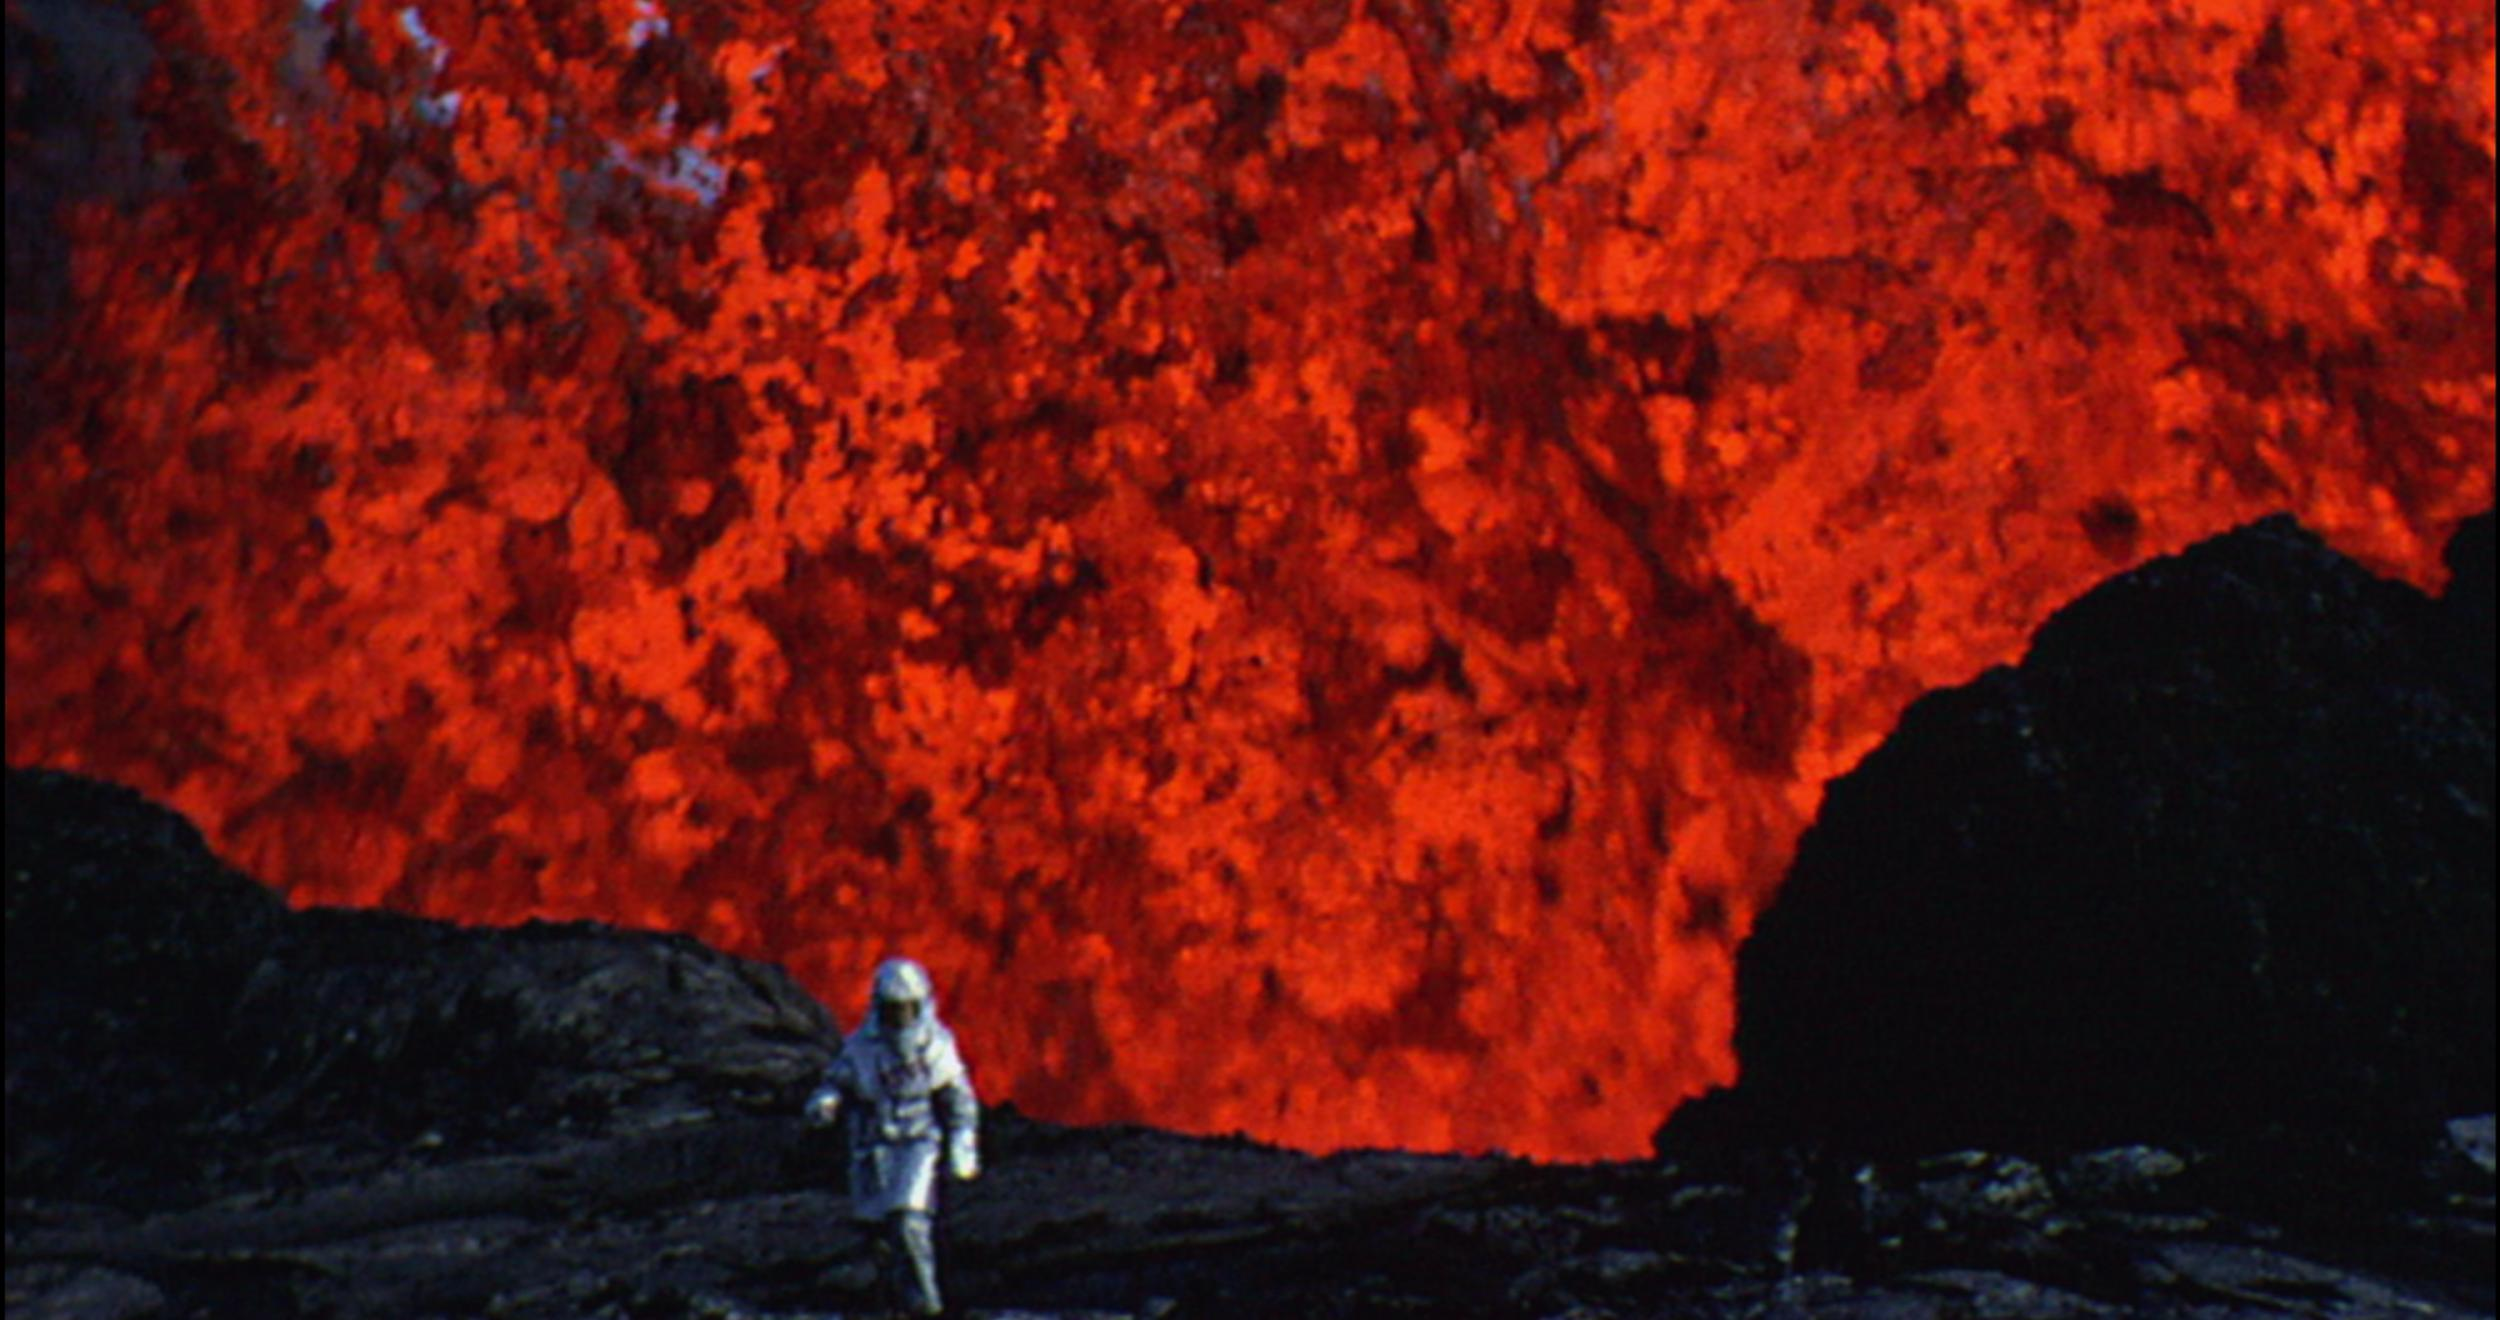 Archival footage of scientist Maurice Krafft being drawn, like a moth to a flame, perilously close to titanic lava flows in  Into the Inferno  (2016).